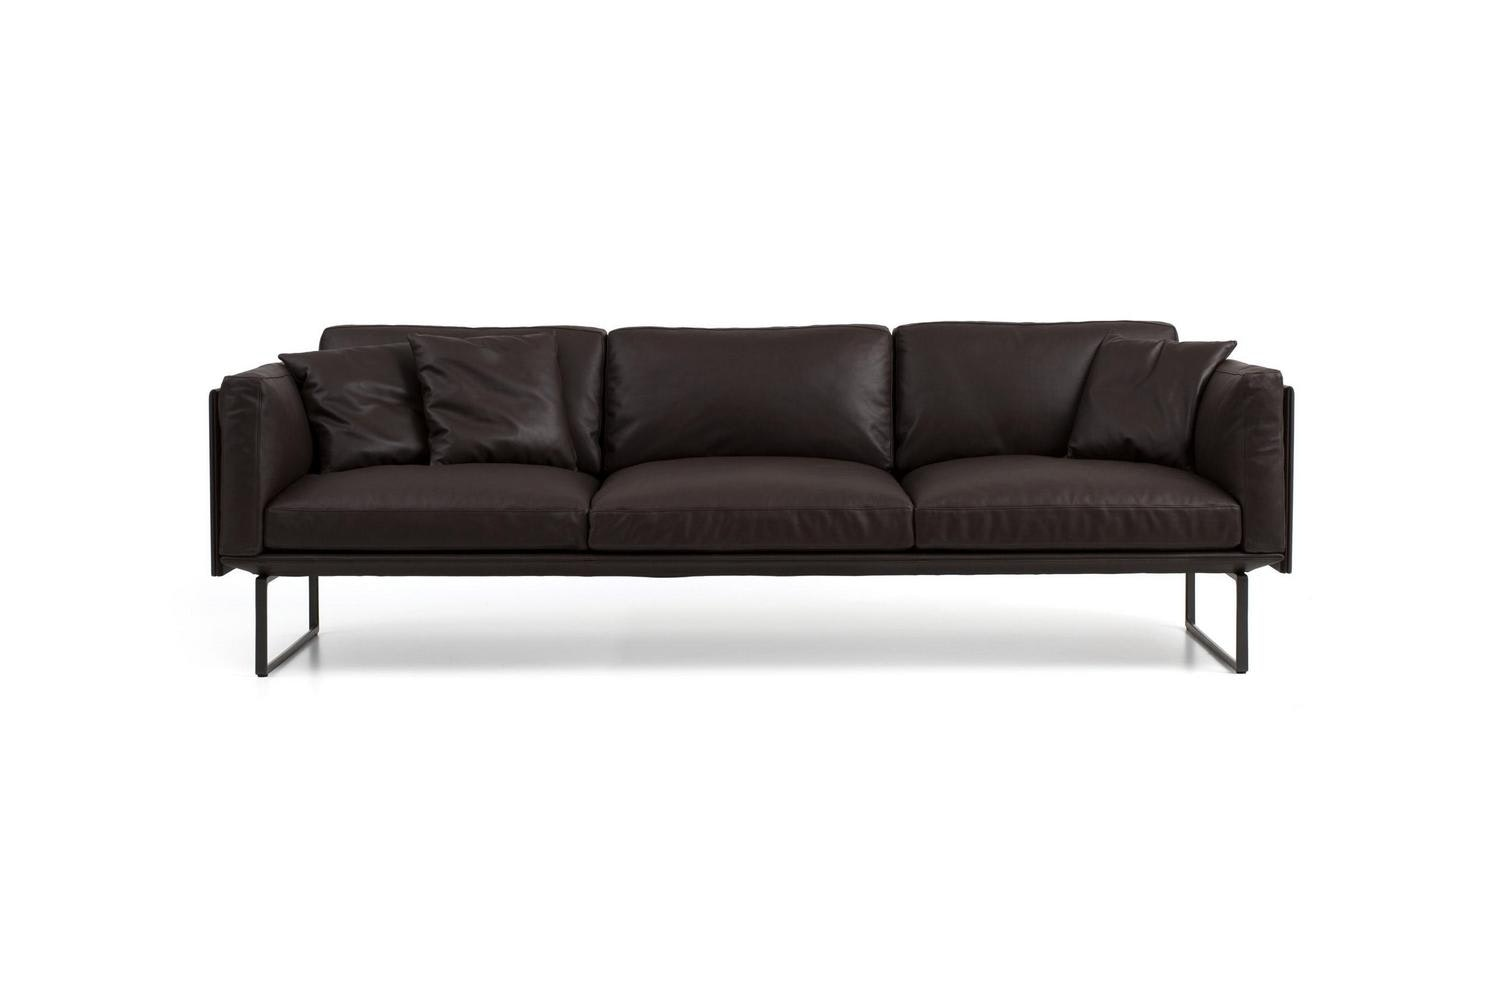 202 8 Sofa By Piero Lissoni For Cassina Space Furniture